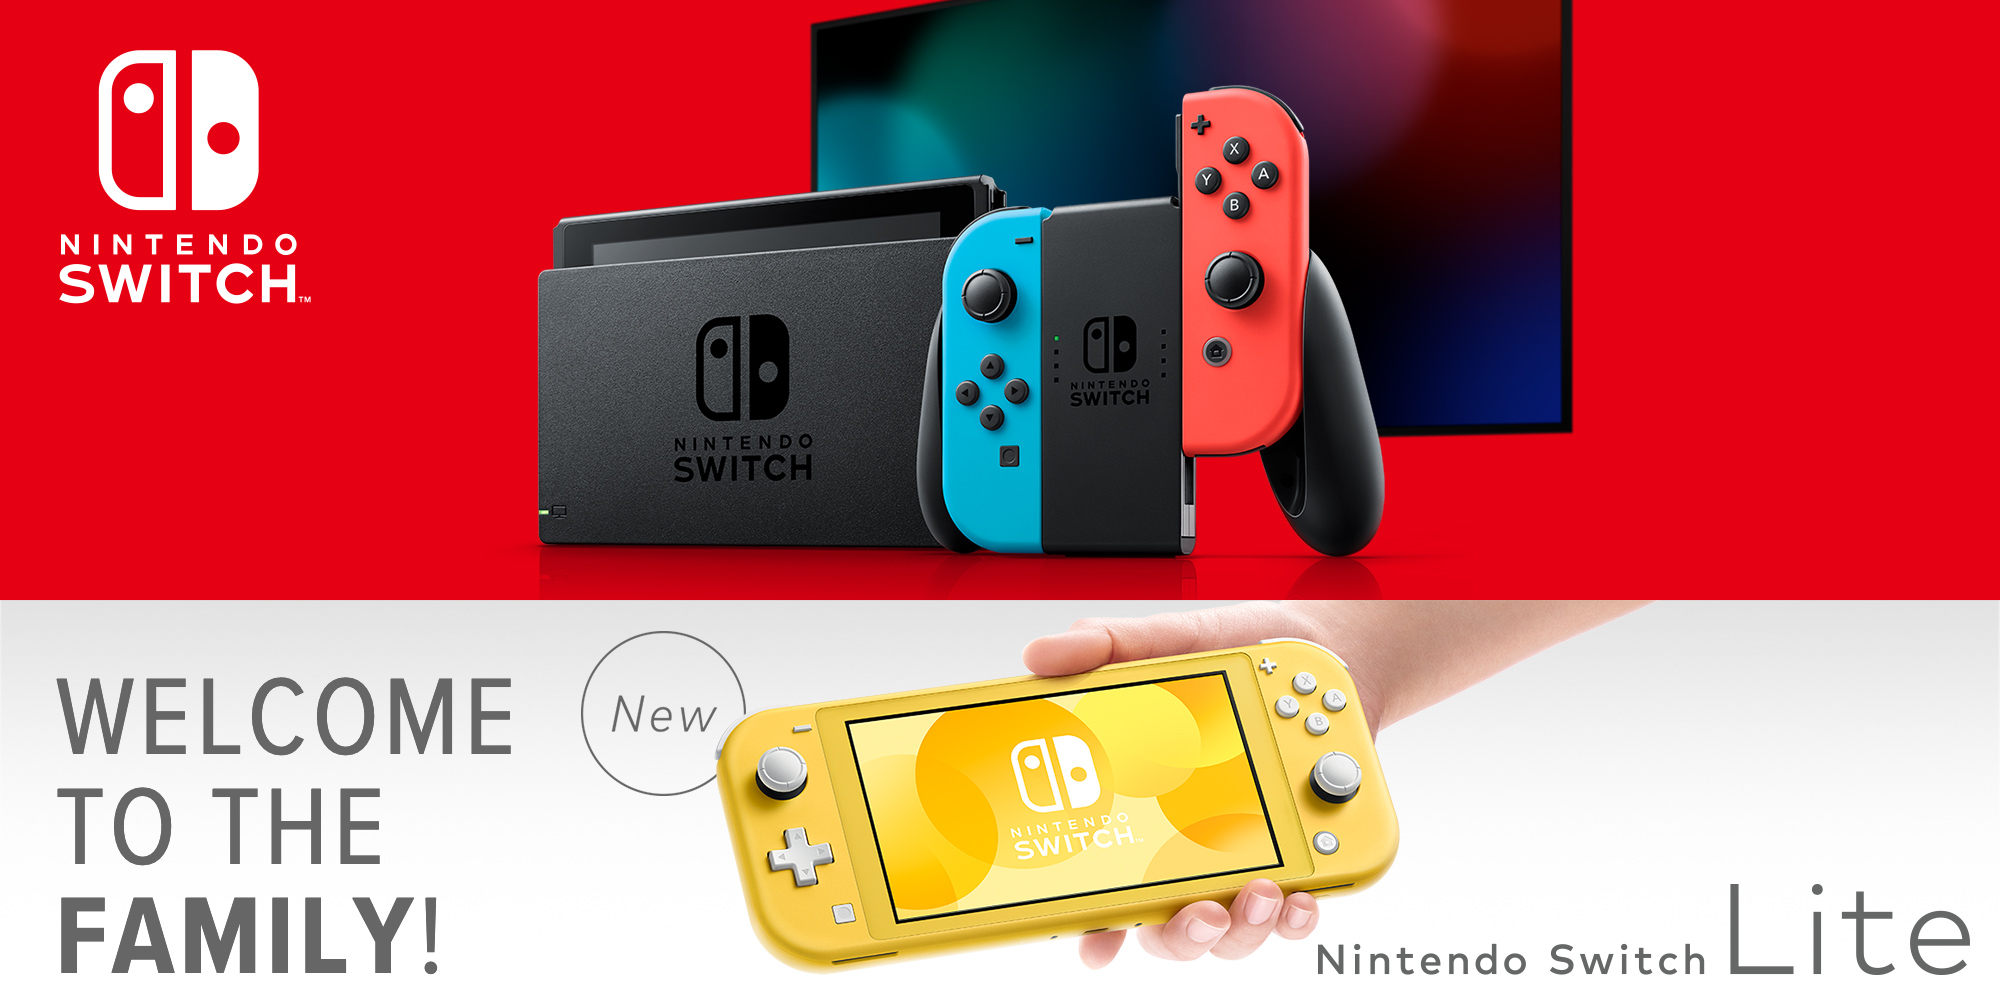 Get ready for Nintendo Switch Lite!